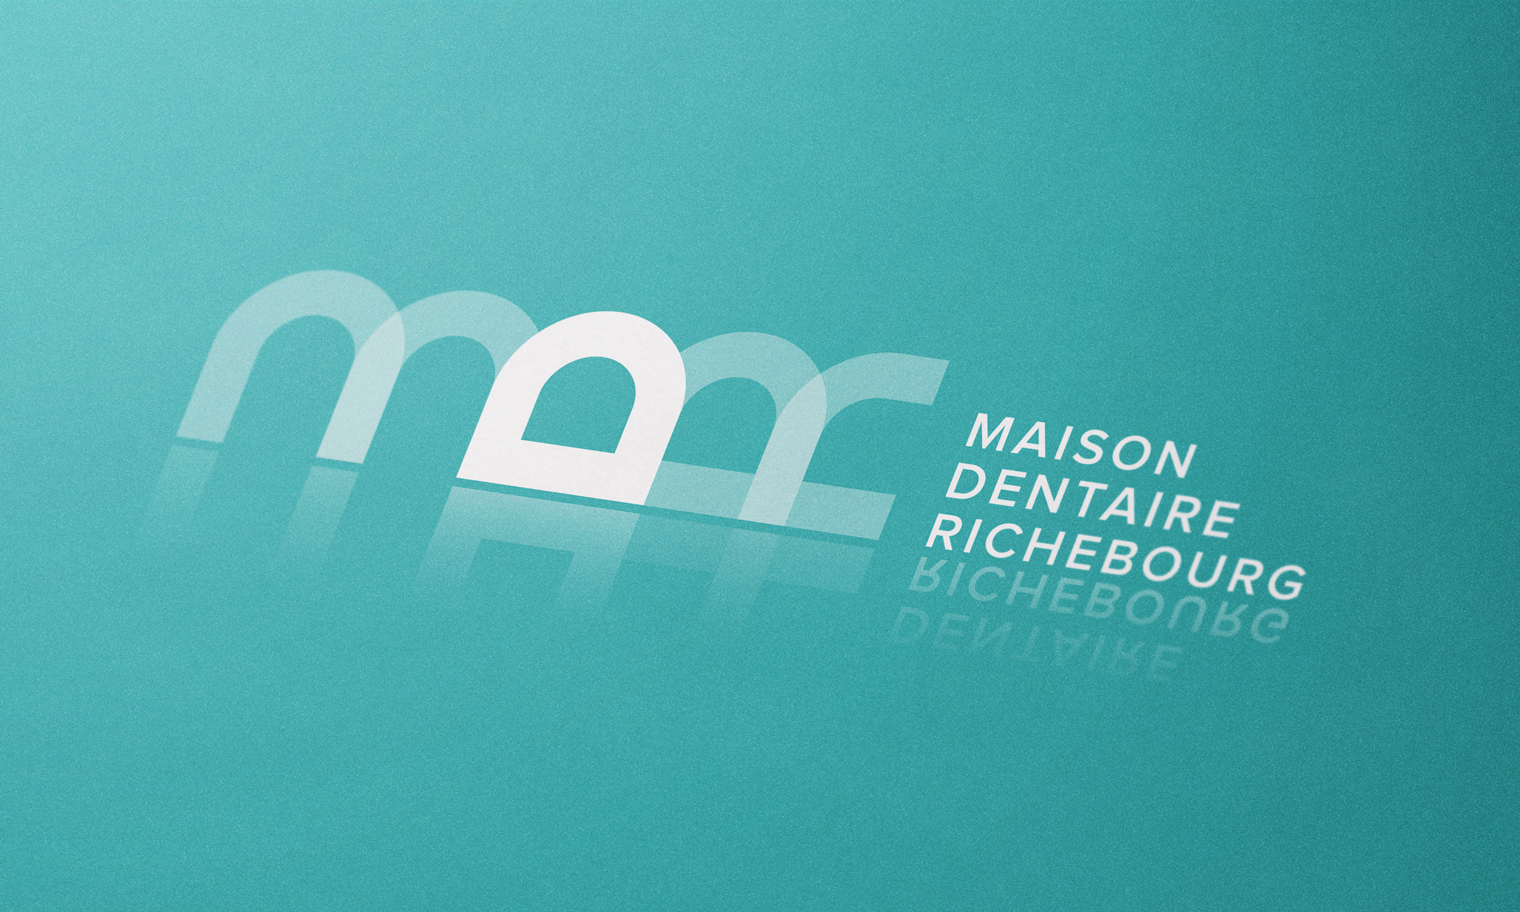 logo 2 Maison dentaire richebourg